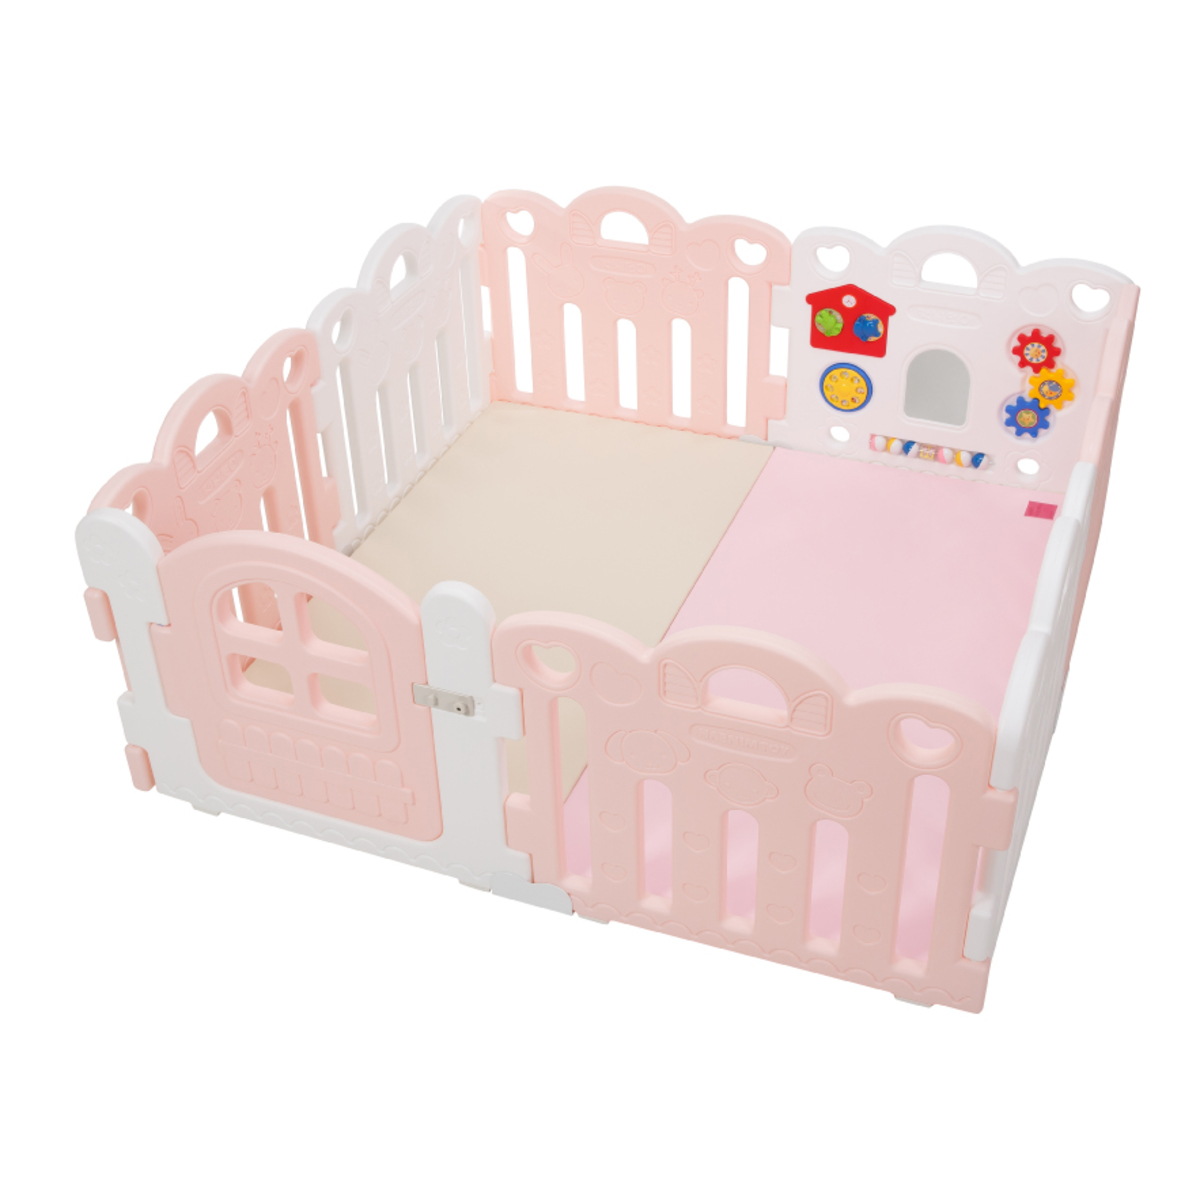 Haenim Toy Petit 8 Panels Baby Room and Play Mat Set - Pink / White